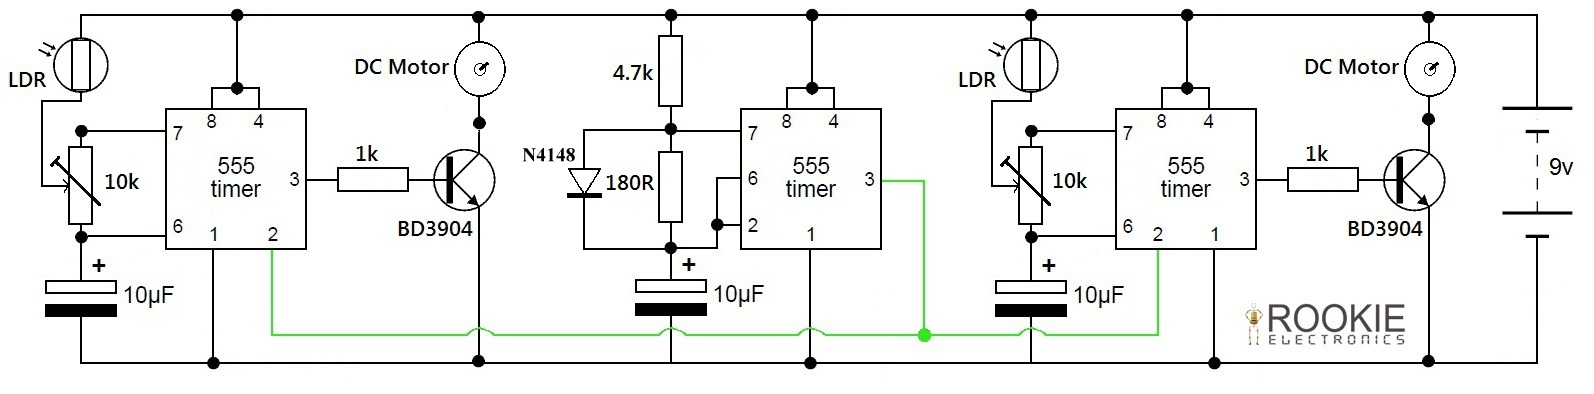 LFR Using Just 555 Timers | Rookie Electronics | Electronics ...